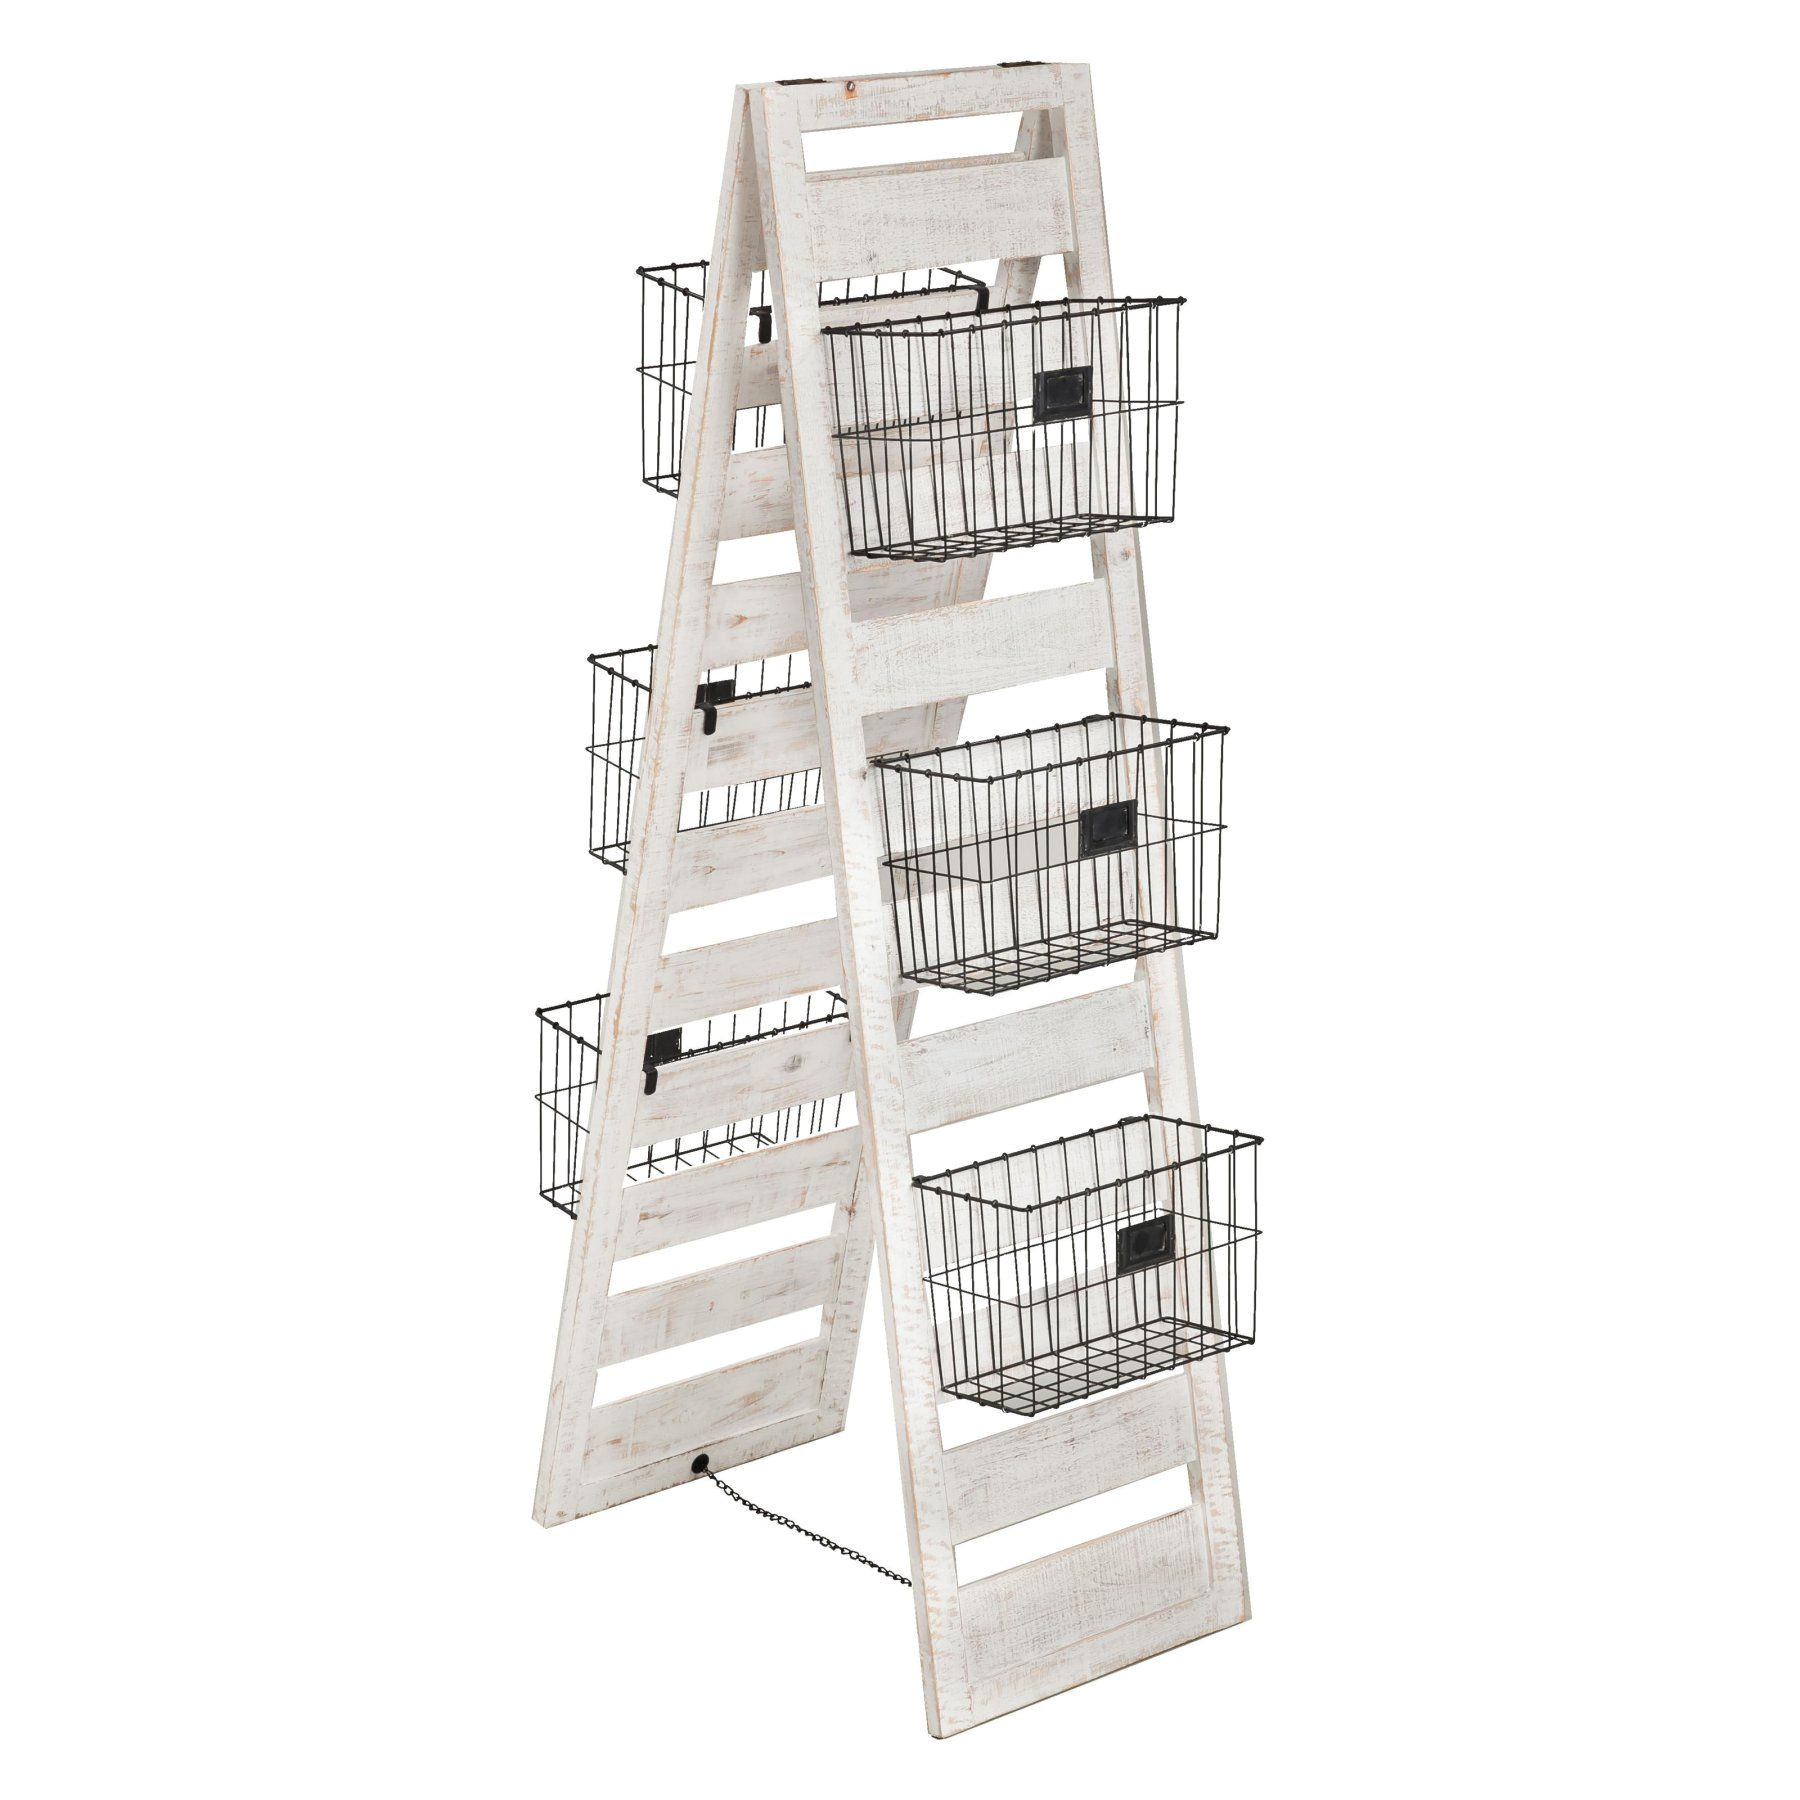 evergreen enterprises double sided wooden ladder storage rack 8f00156